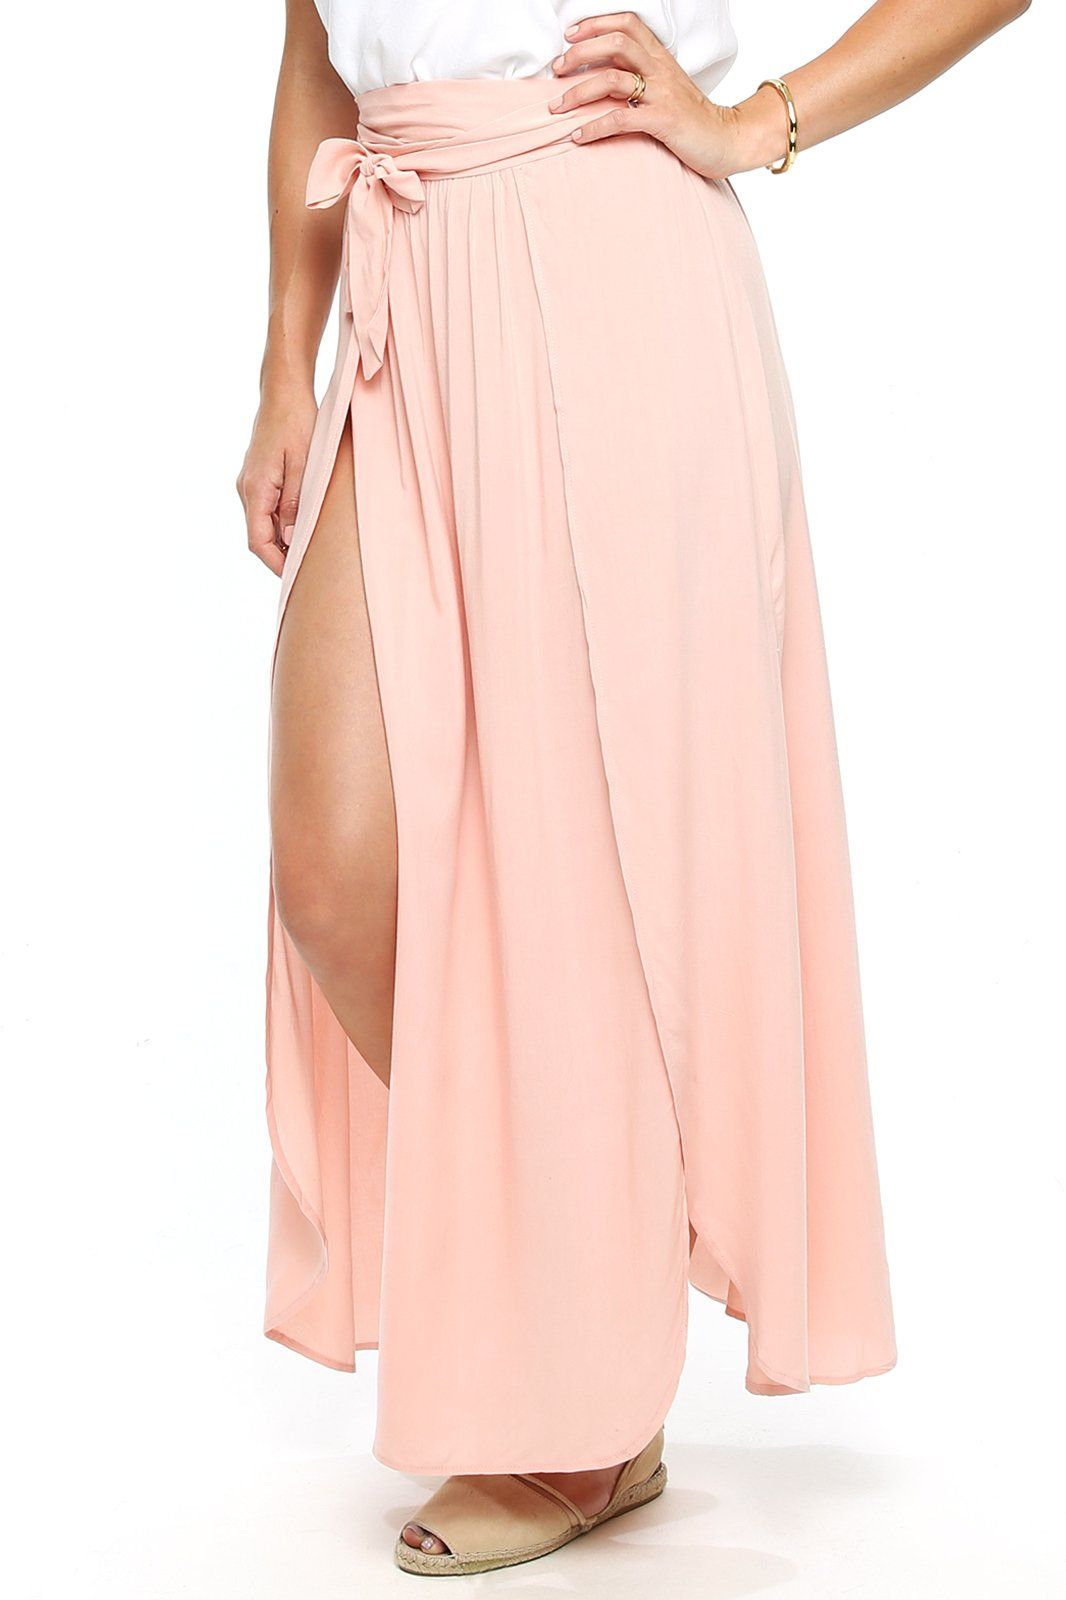 Amalfi Double Slit Skirt - Peach - Shore